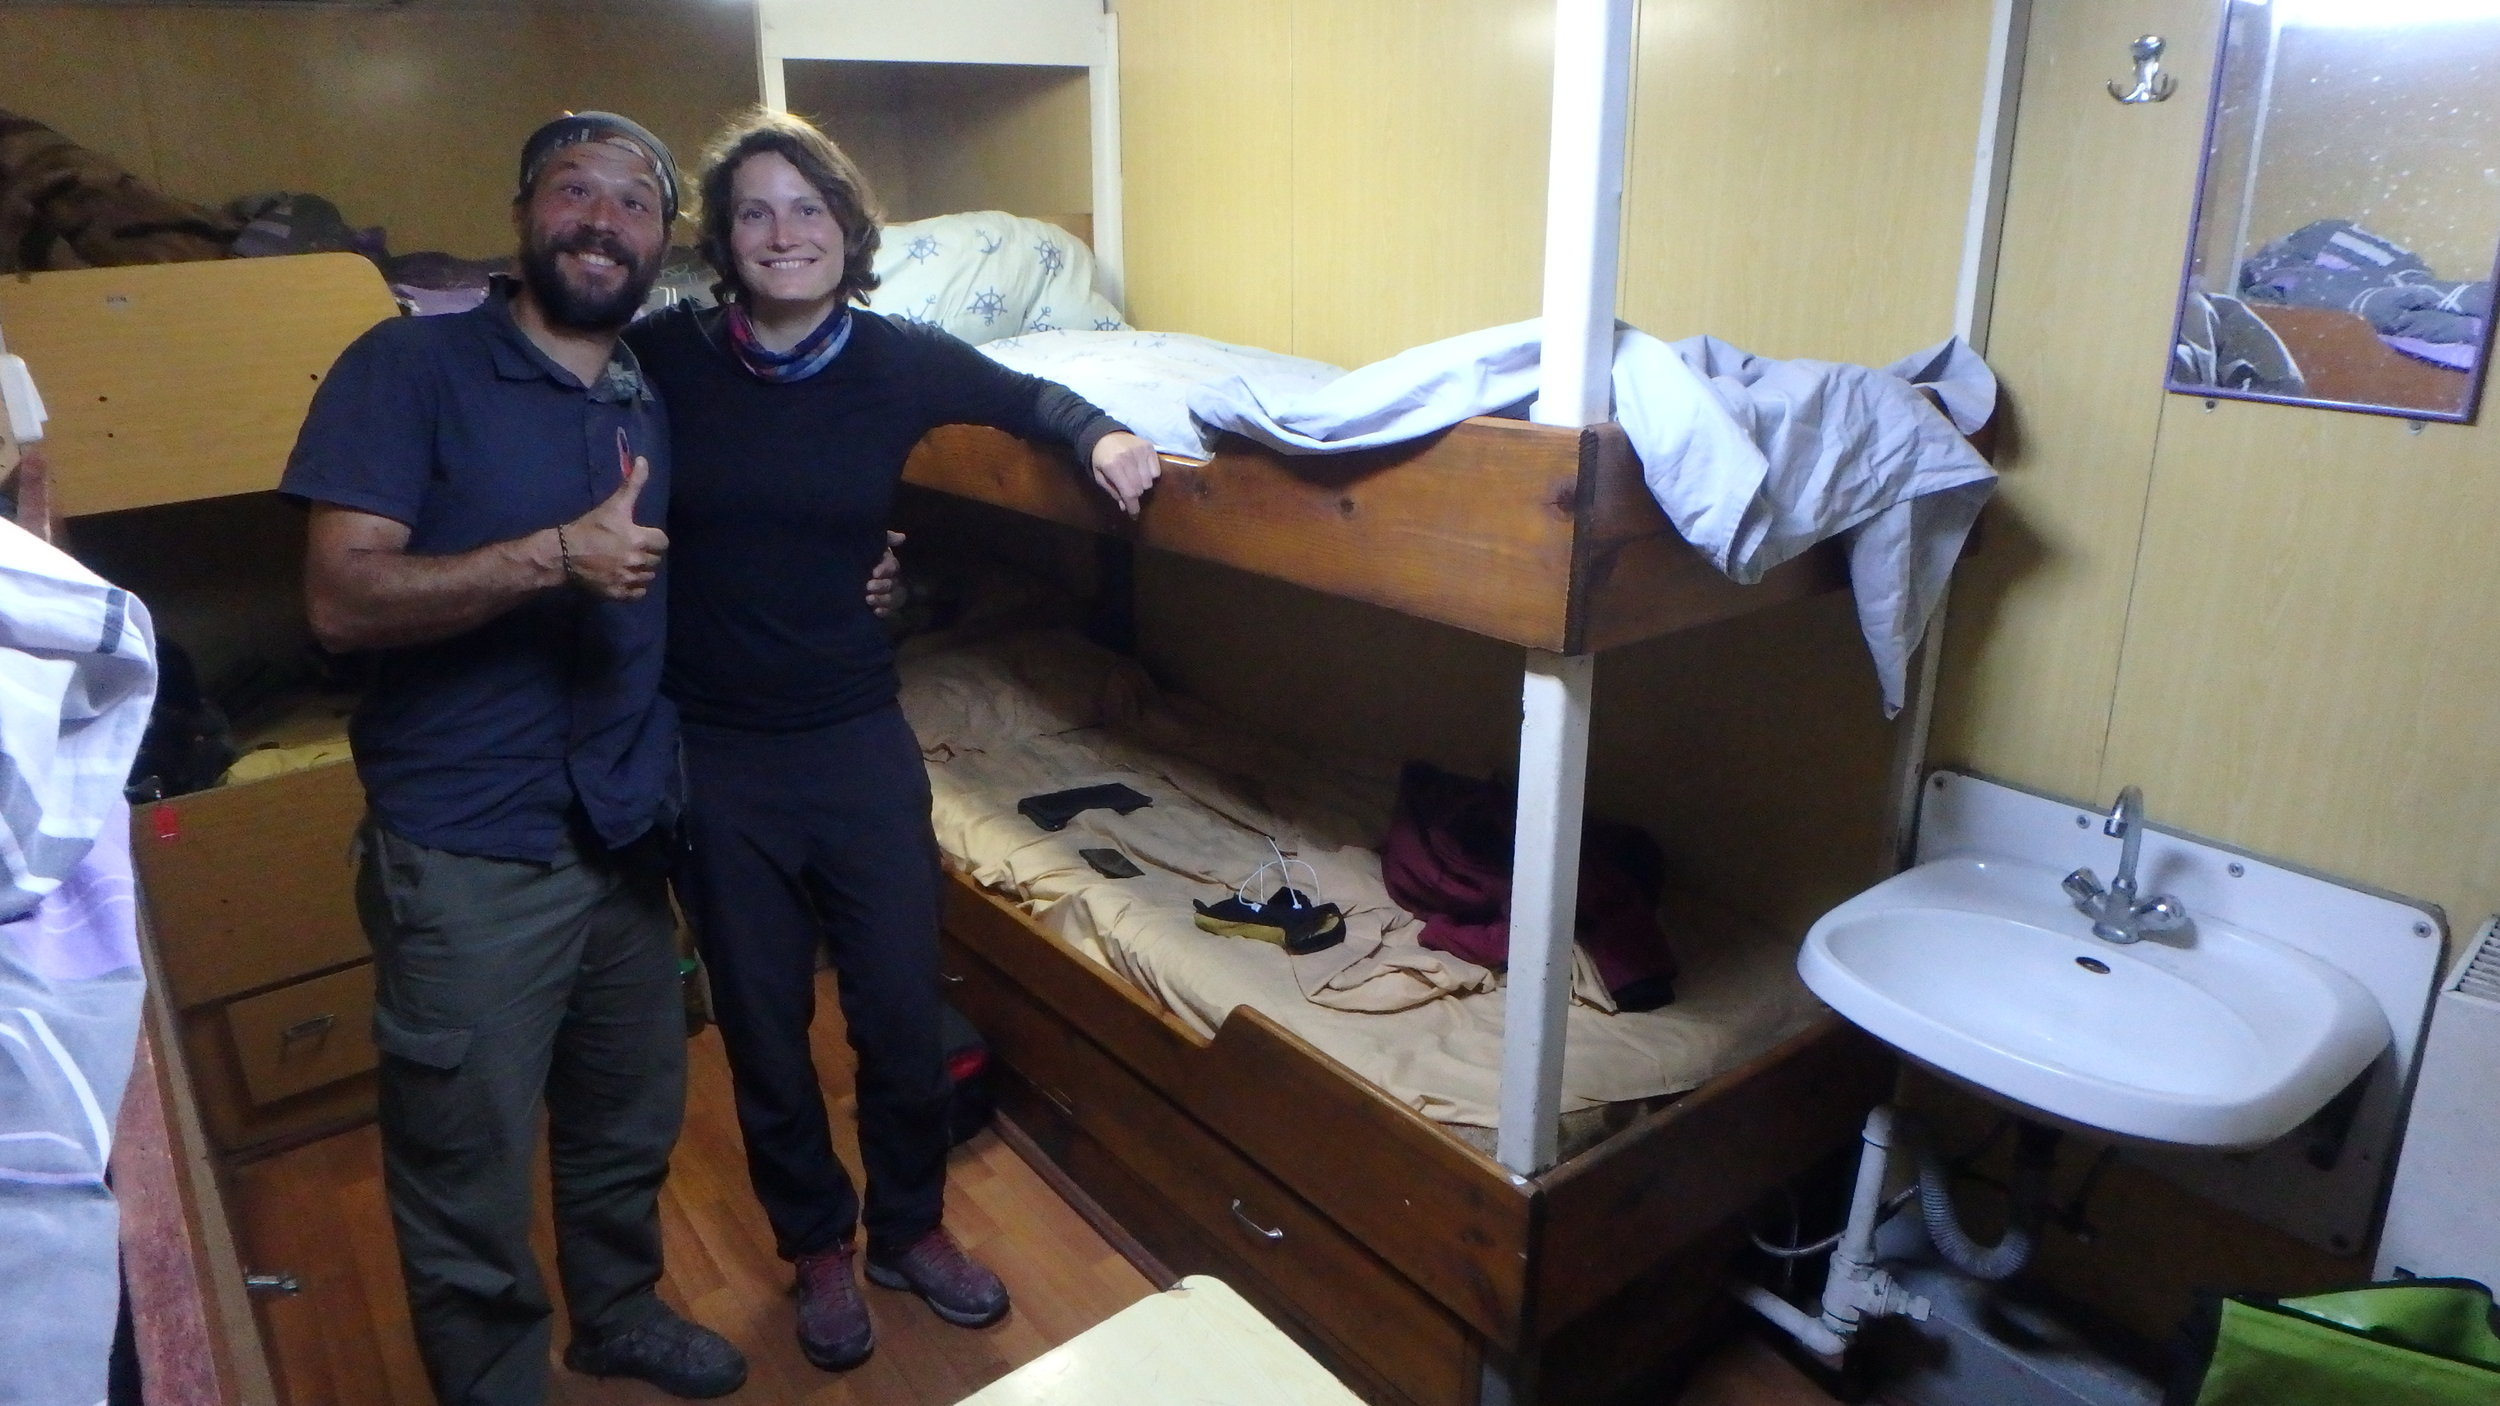 Sera and Marlene, from Spain and Germany, respectively, had been cycling across Asia for over a year and visiting national parks to interview, learn, and teach about nature preservation around the world. We shared a great time aboard the ship and became good companions rather quickly. This is our cabin on the boat.